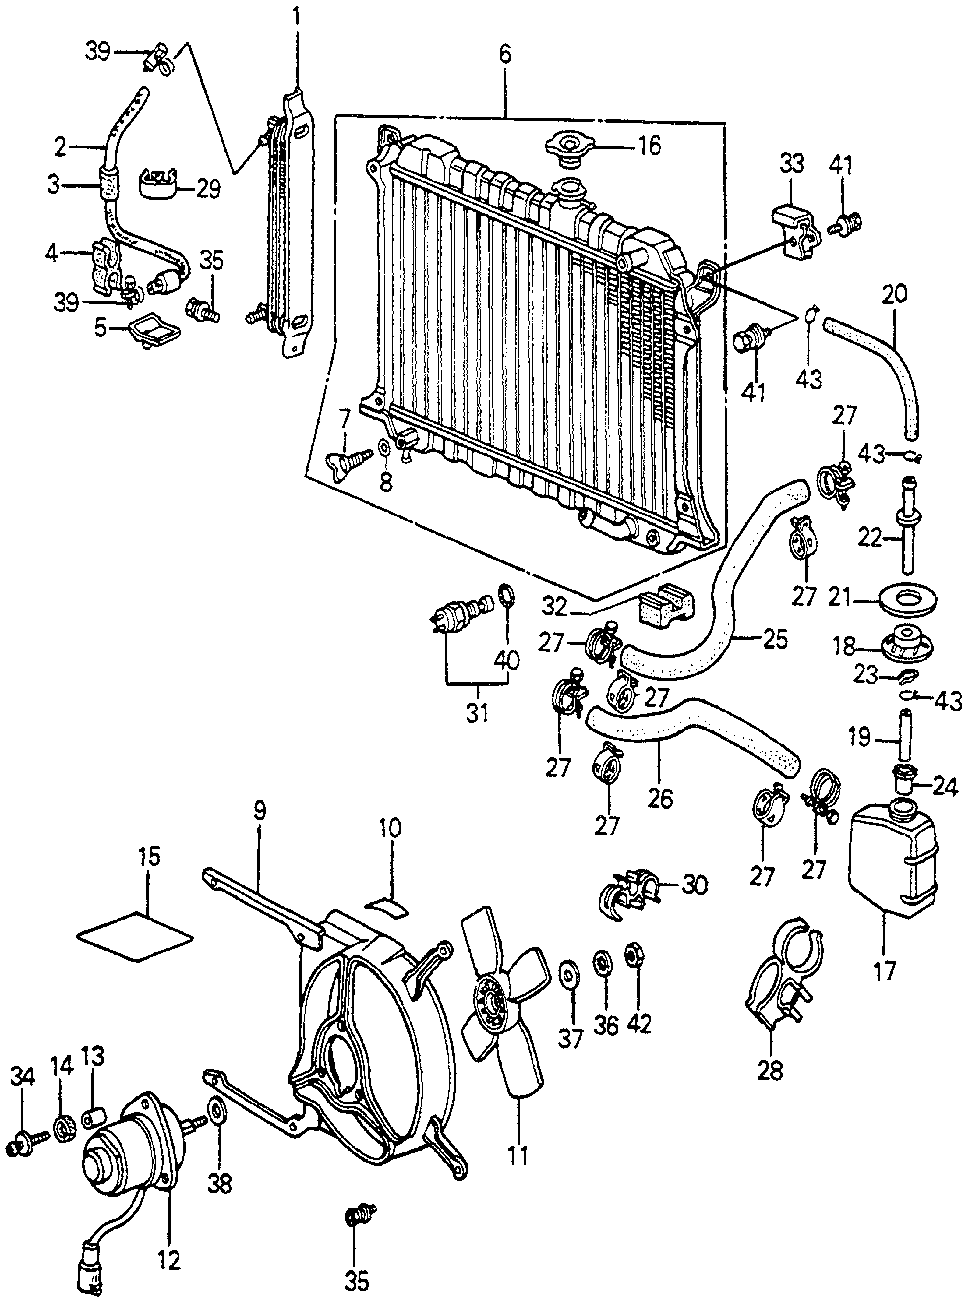 19106-689-000 - JOINT, RESERVE TANK